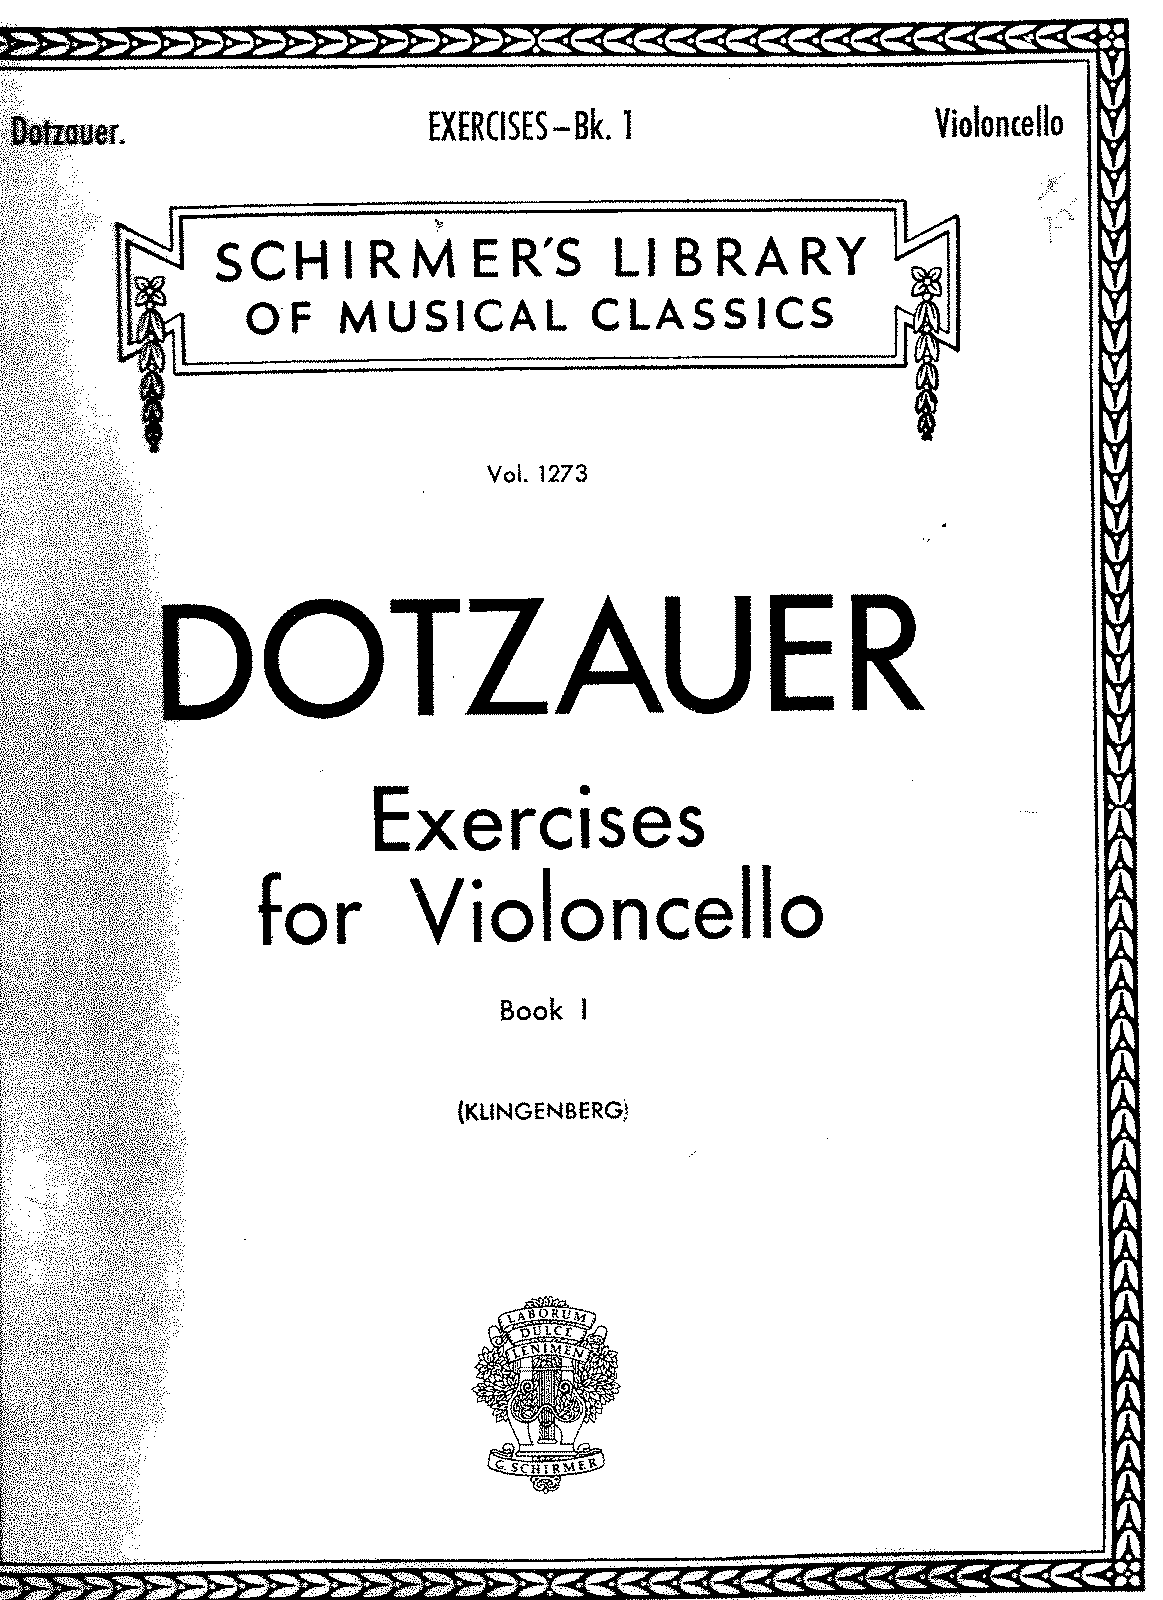 Dotzauer - exercises for violoncello book I.pdf